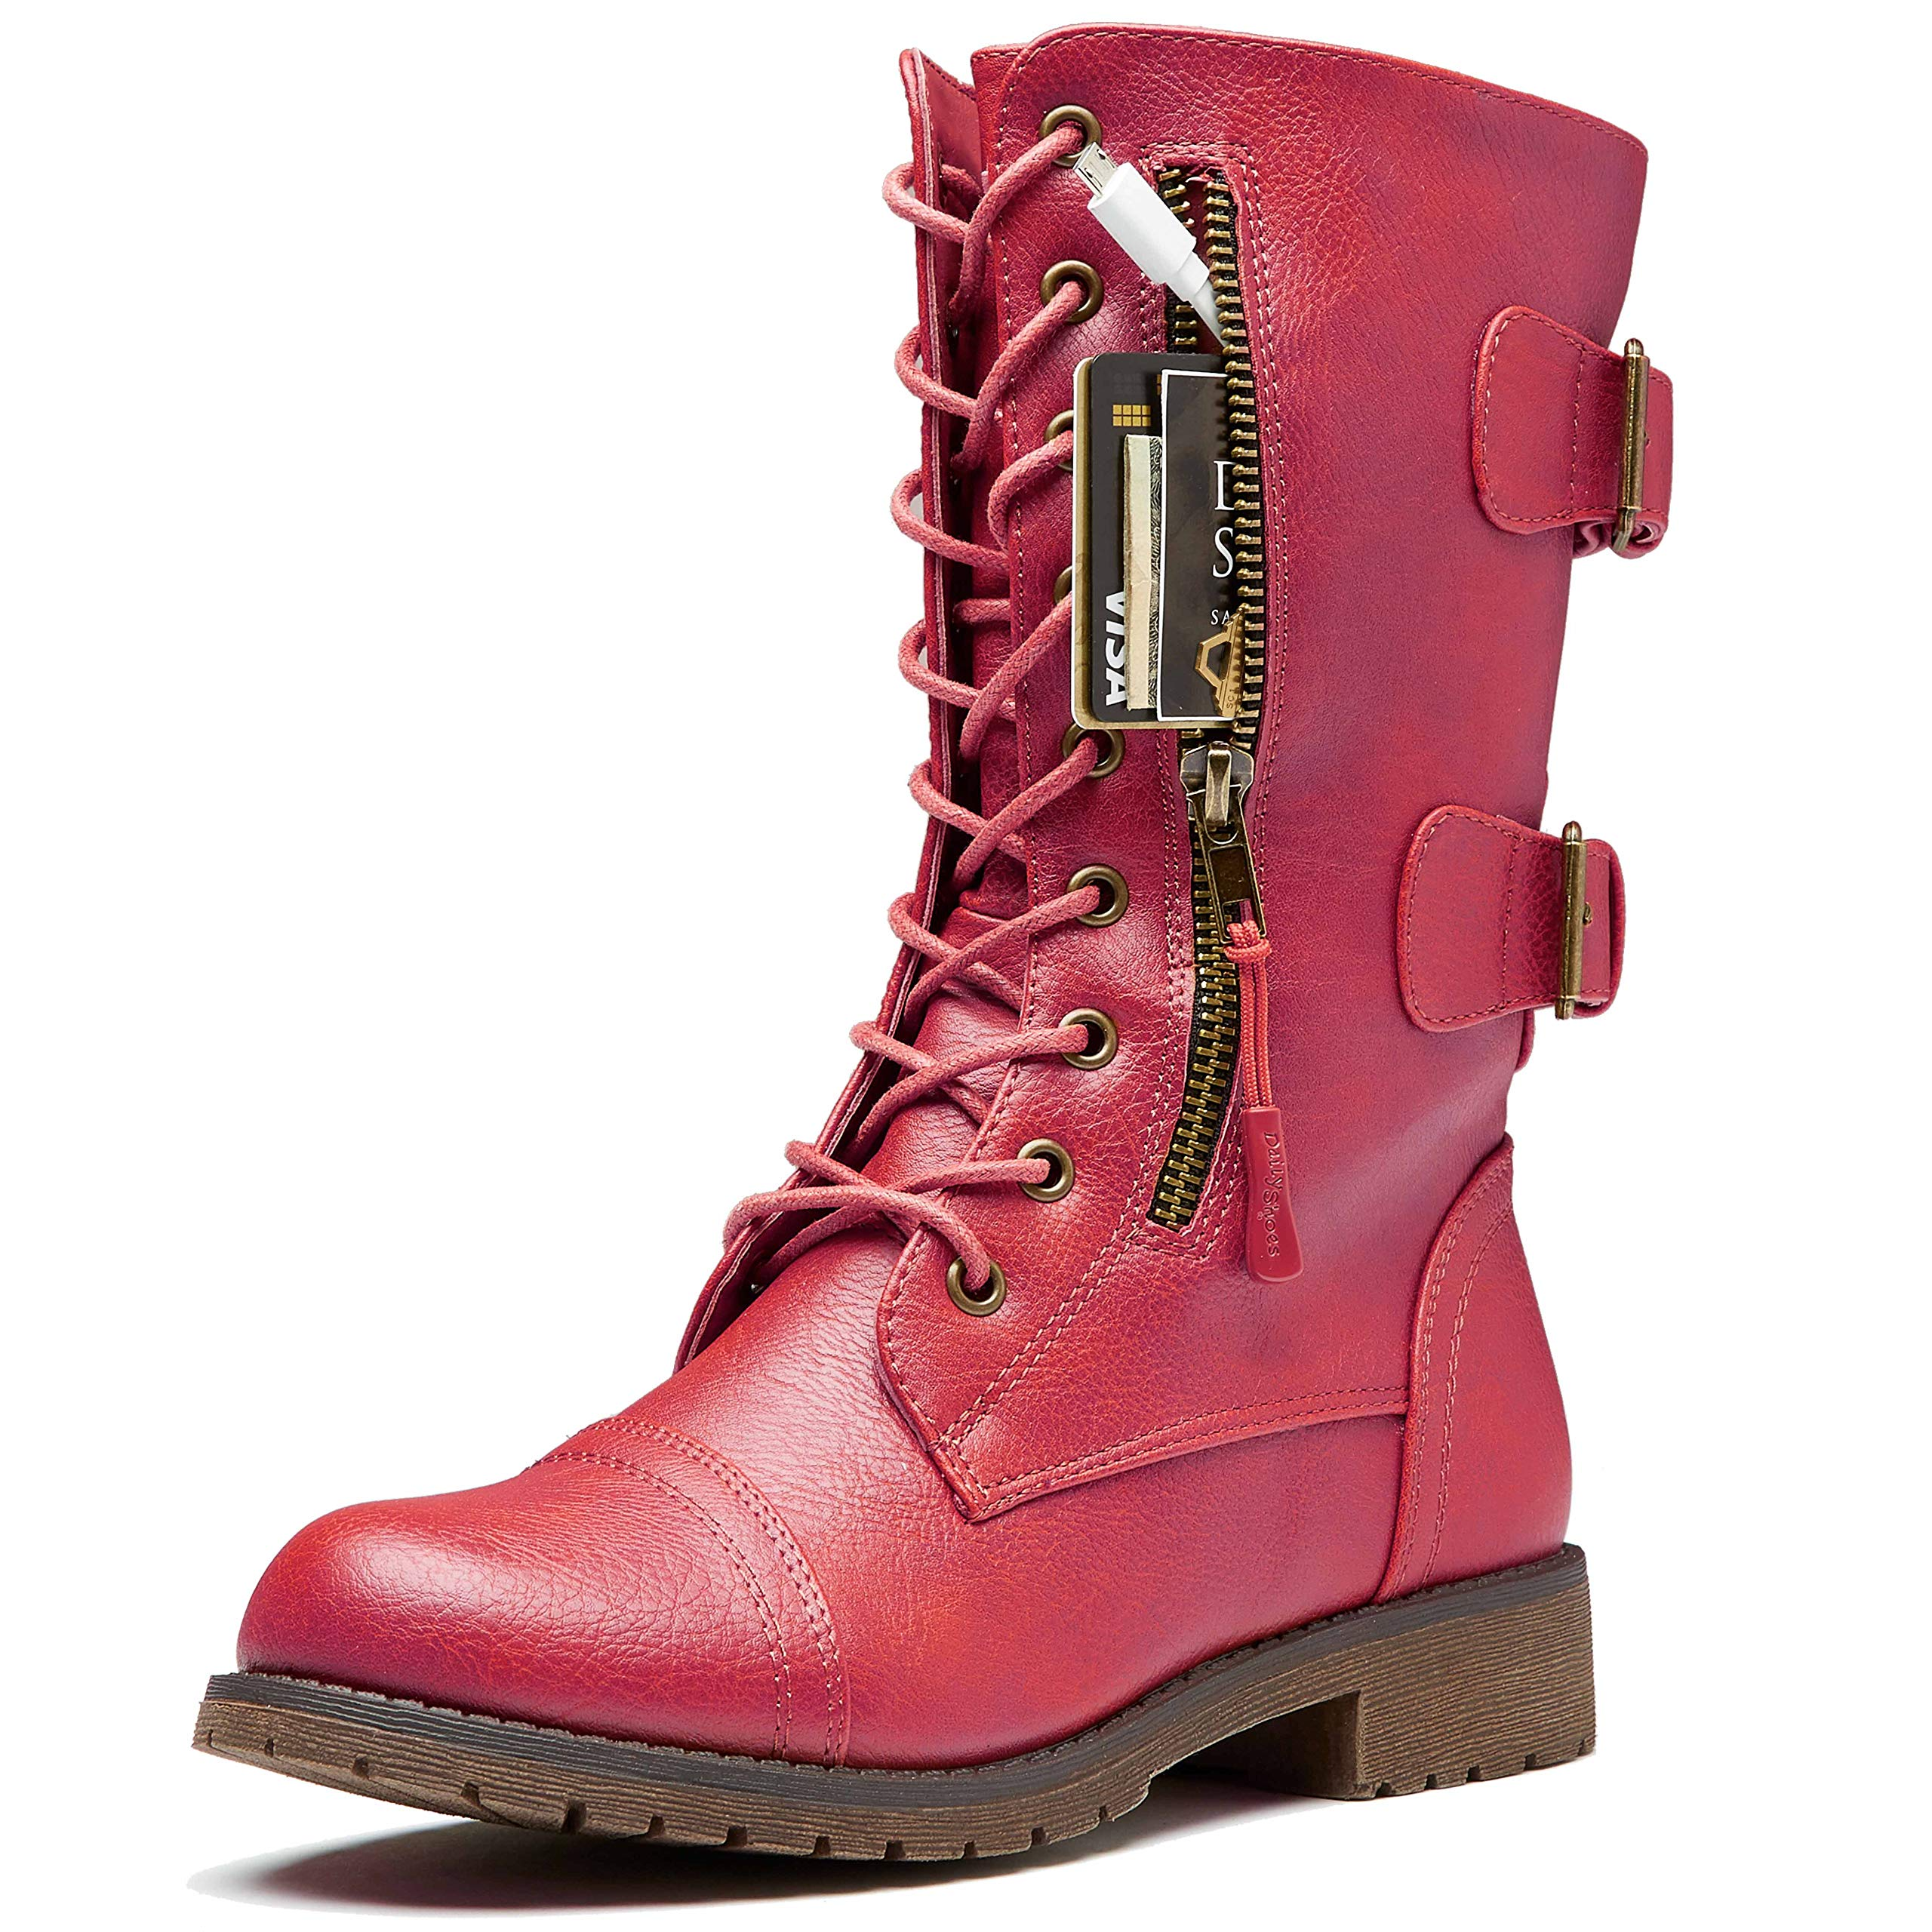 DailyShoes Women's Military Lace Up Buckle Combat Boots Mid Knee High Exclusive Credit Card Pocket, Elegant red, 9 B(M) by DailyShoes